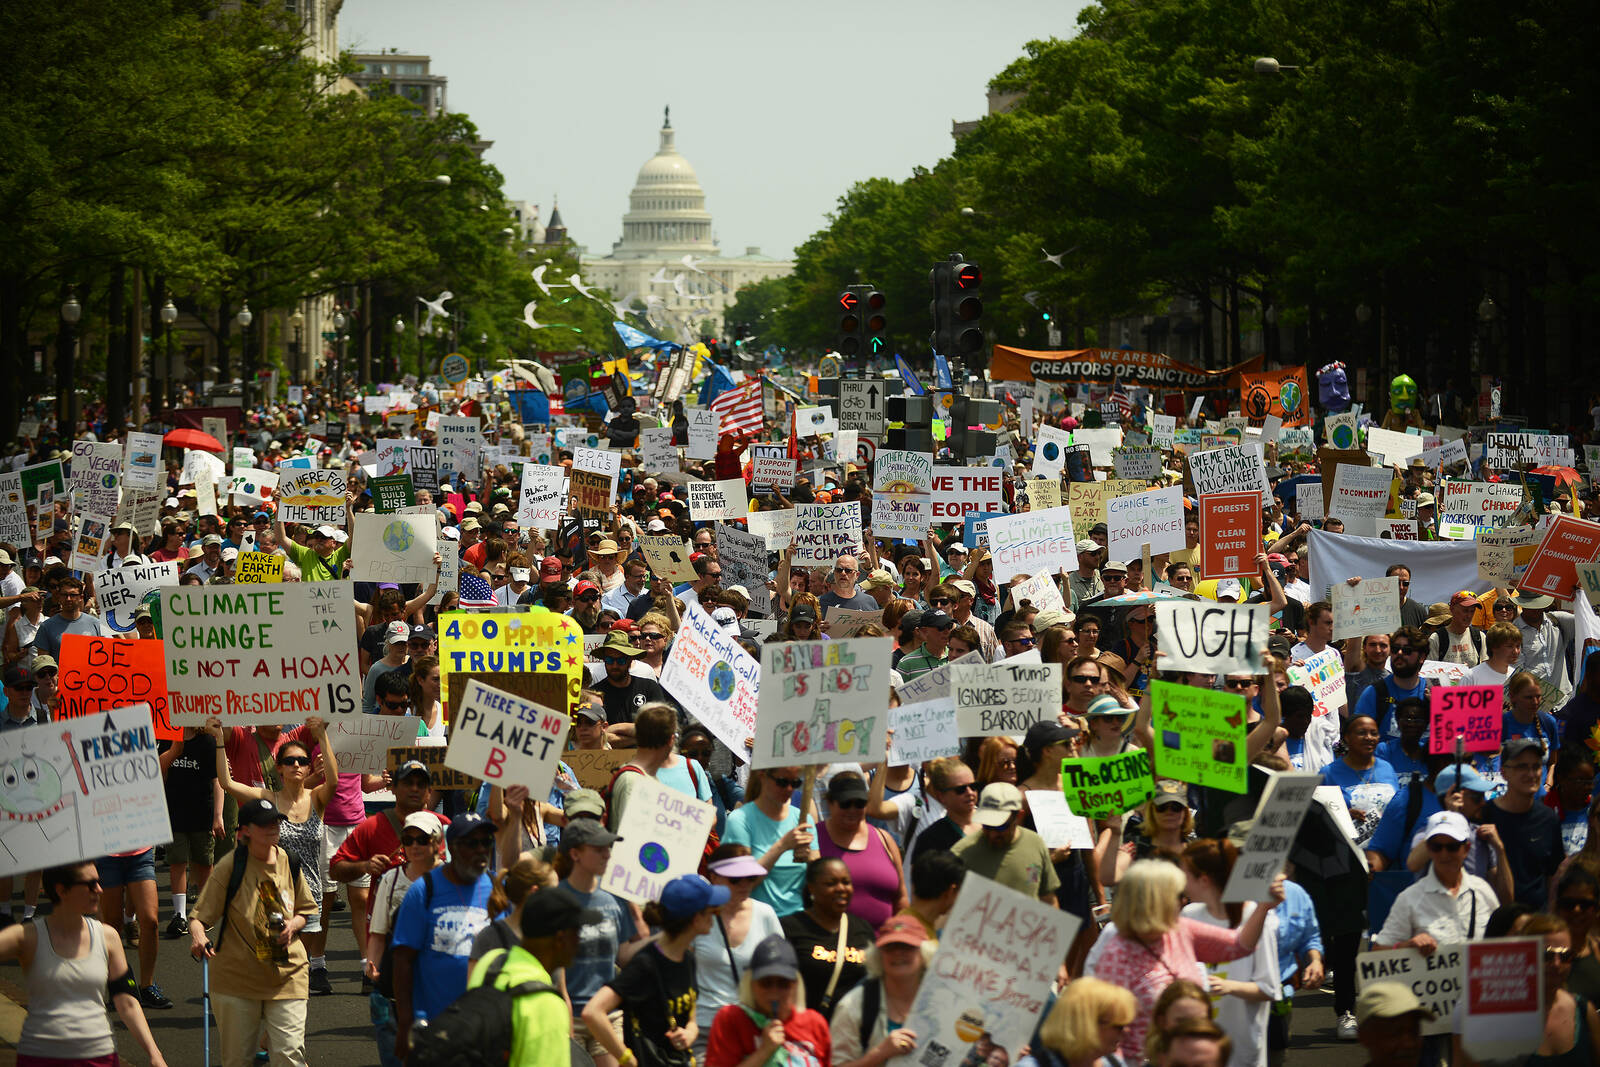 People march from the U.S. Capitol to the White House for the People's Climate Movement on April 29, 2017 in Washington, D.C. Credit: Astrid Riecken/Getty Images